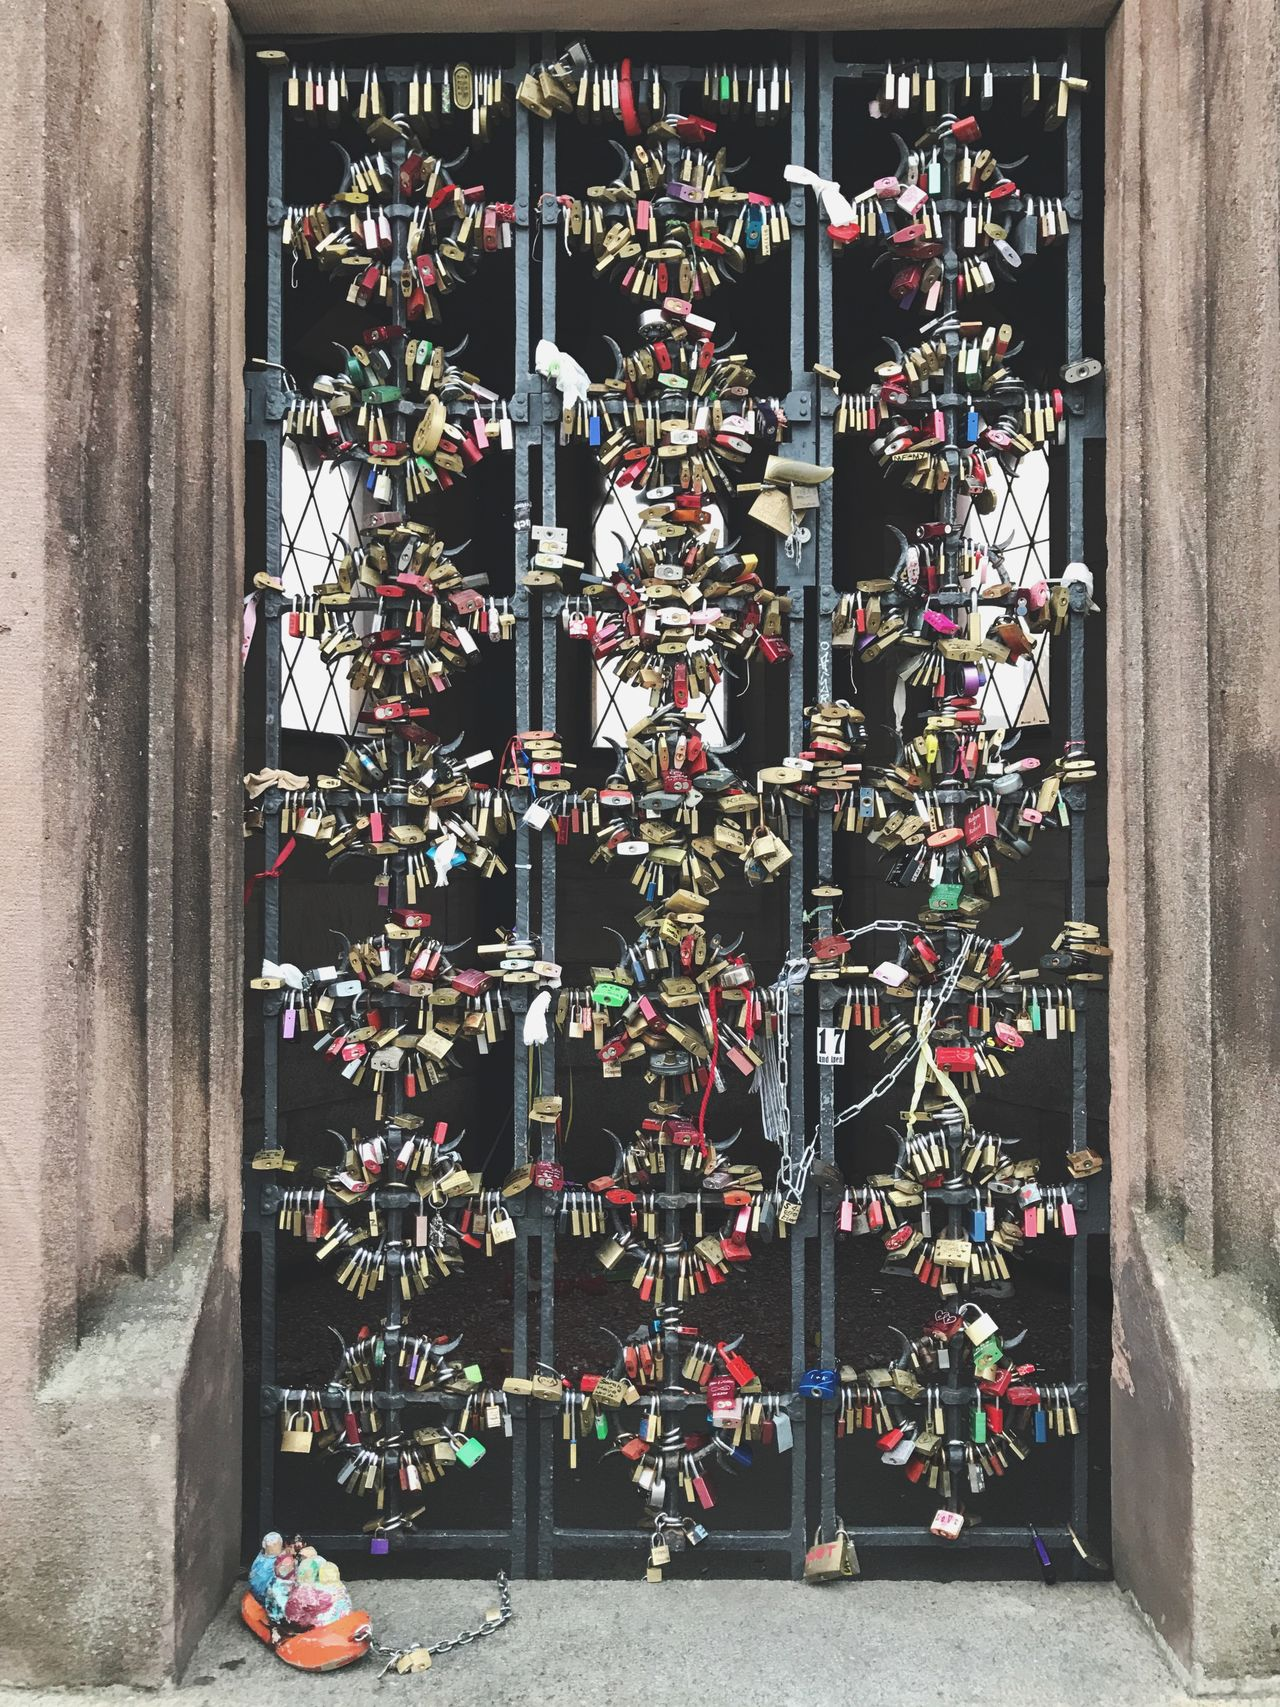 Basel Door Love Lock Love Locks Locks Urban Abundance Large Group Of Objects